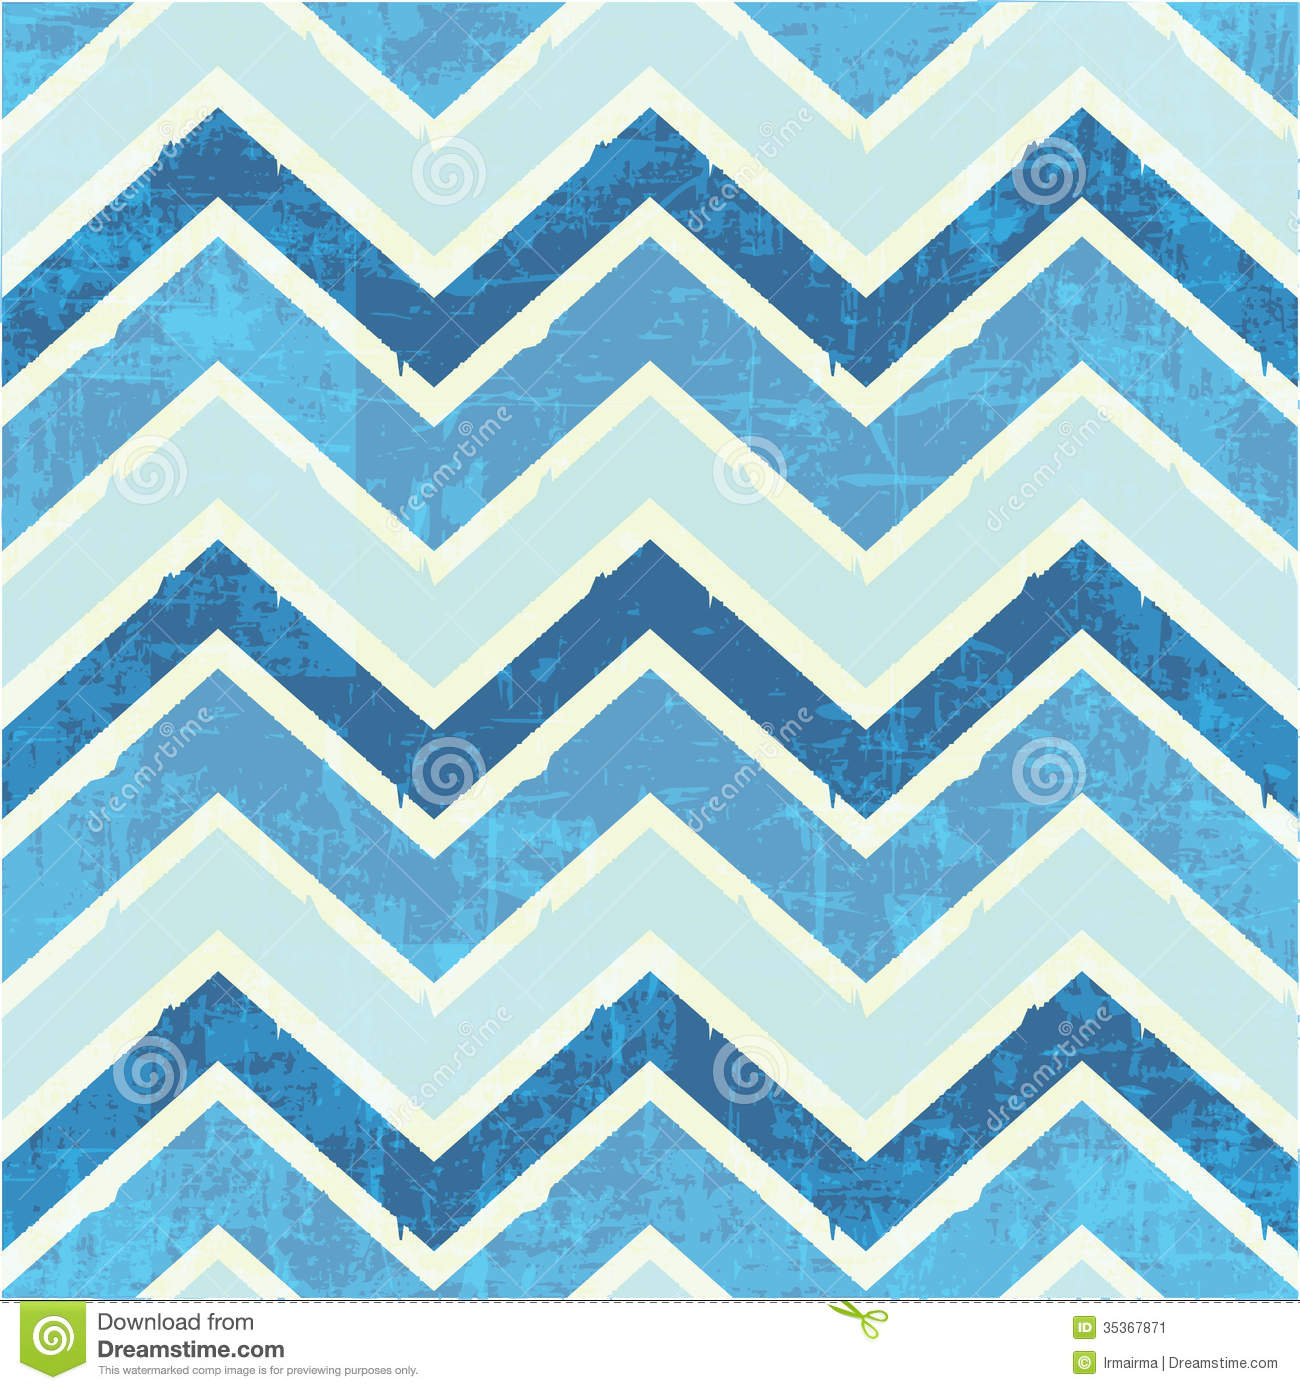 the gallery for blue chevron patterns. Black Bedroom Furniture Sets. Home Design Ideas